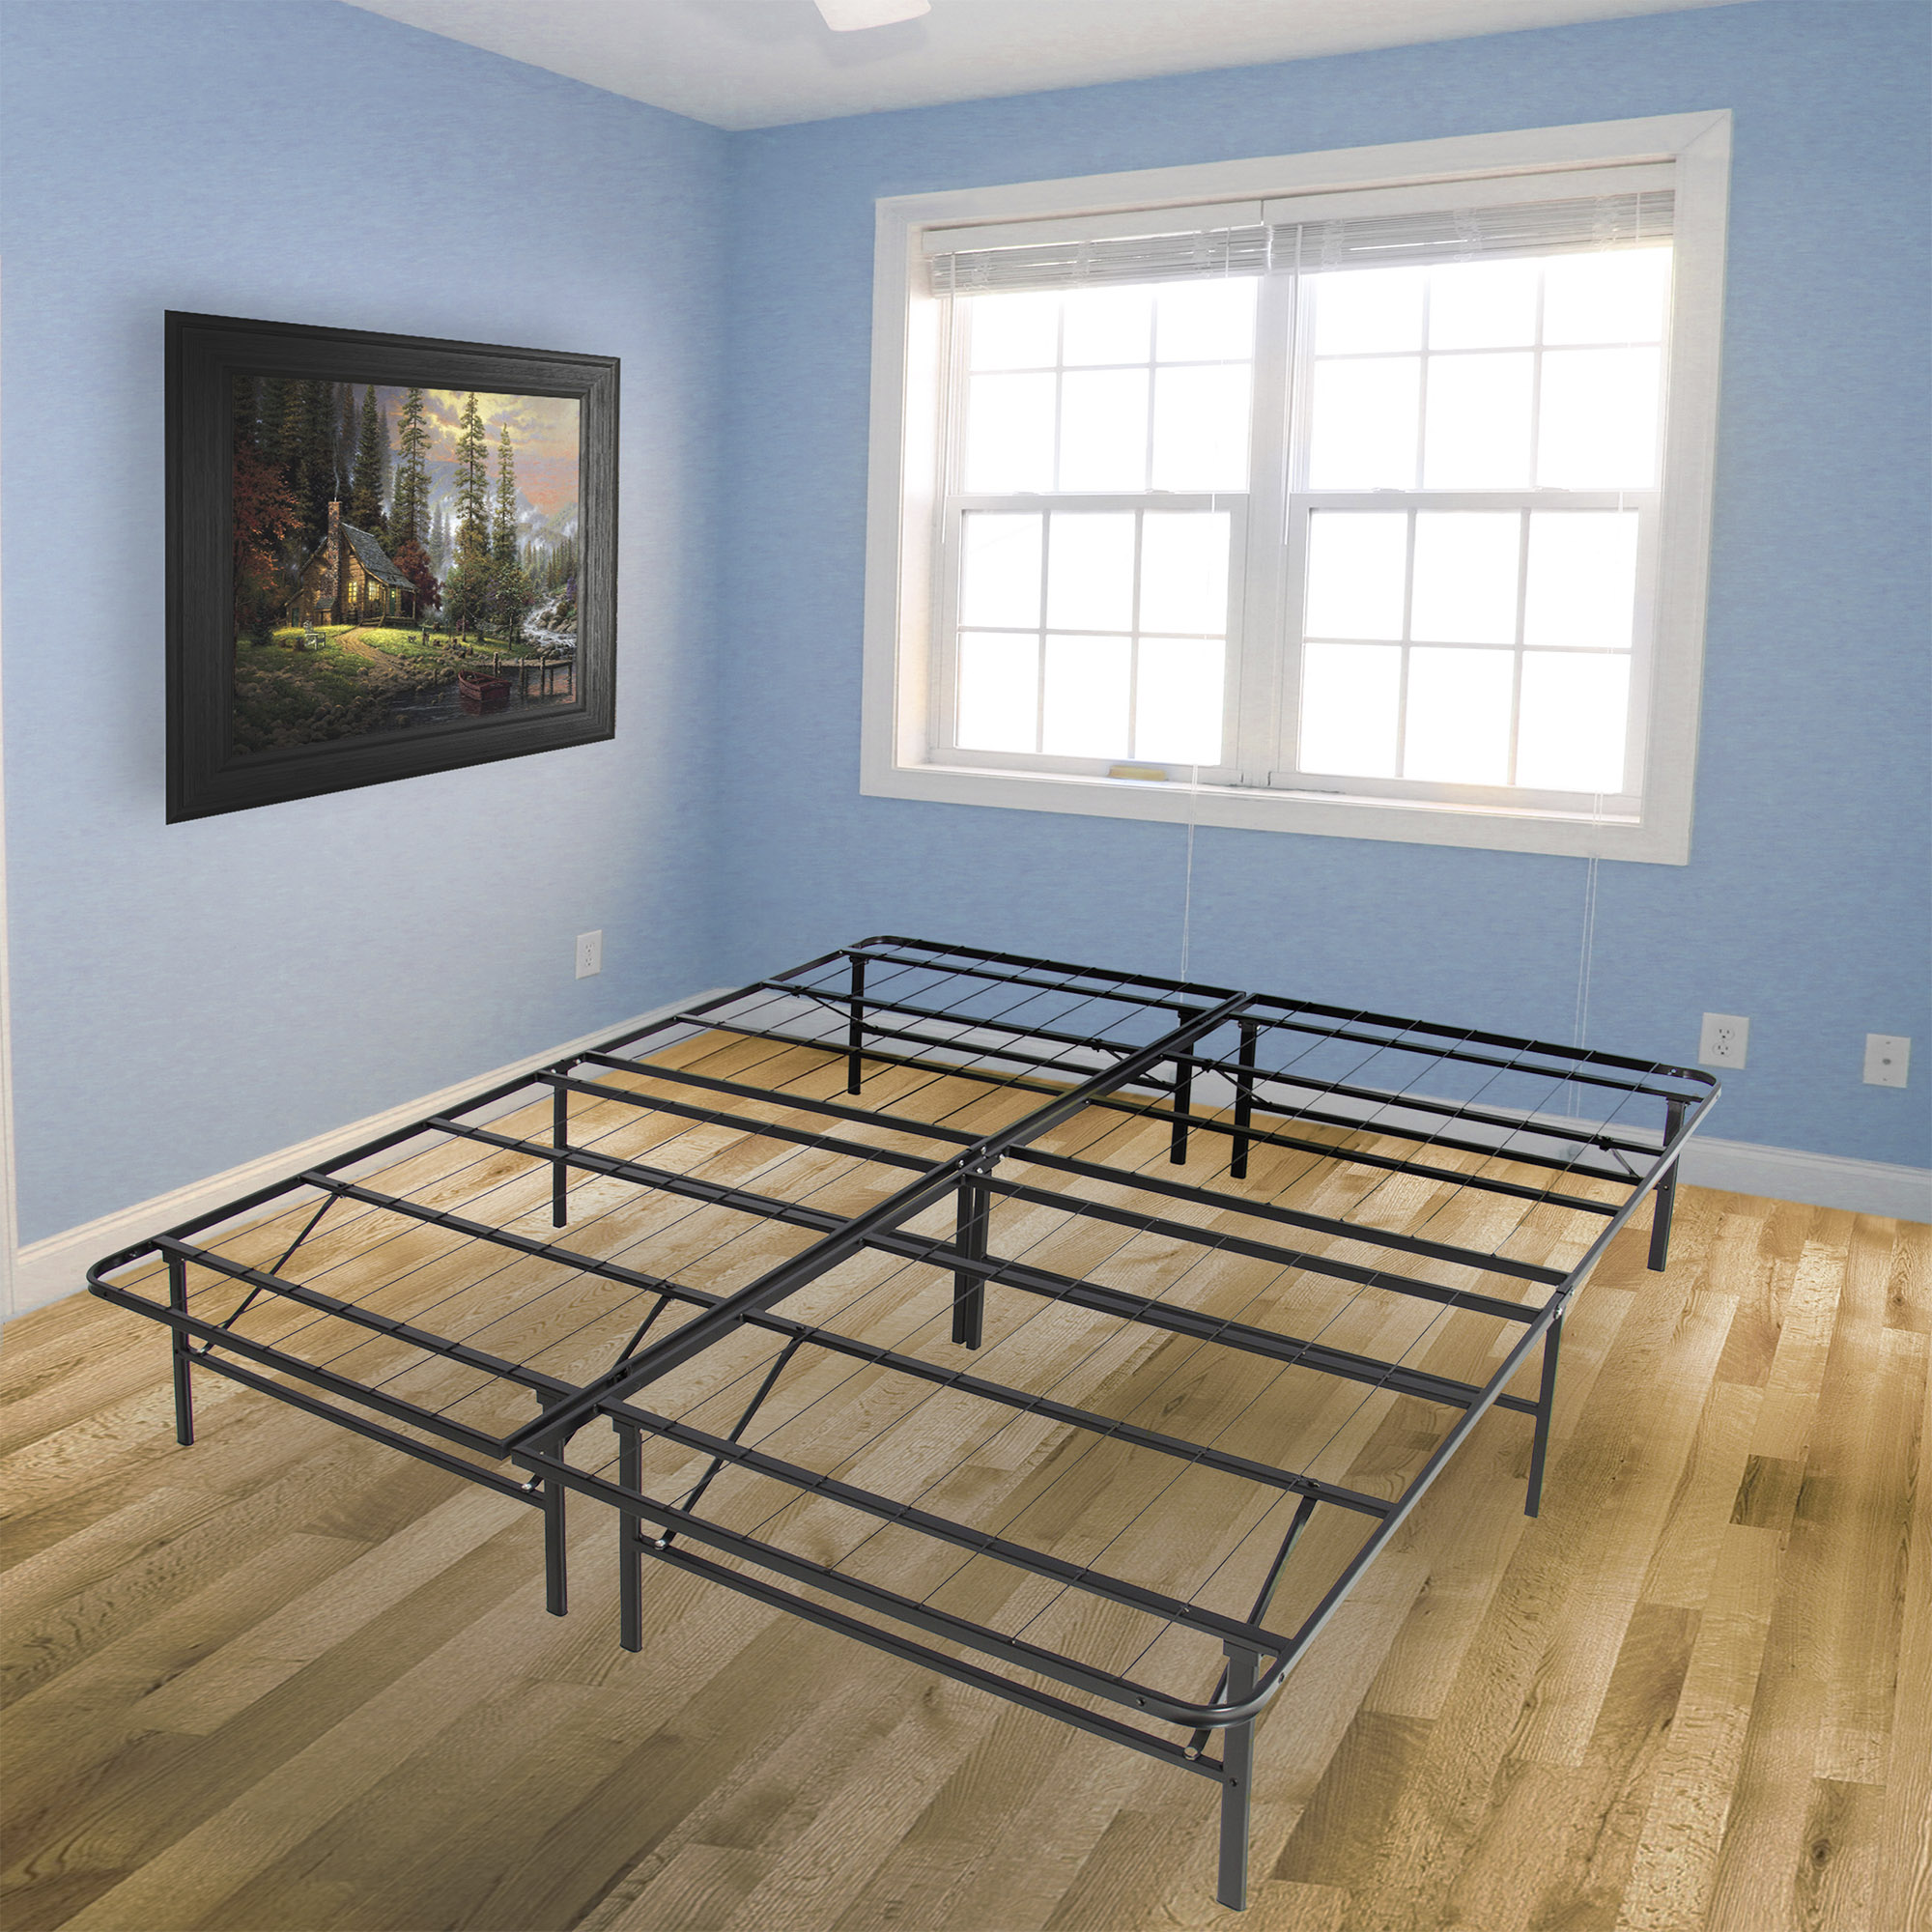 Best Choice Products Dual-Purpose Queen Sized Foldable Metal Platform Bed  Frame Mattress Foundation, No Box Spring Needed, Splits Into 2 Twin Sized